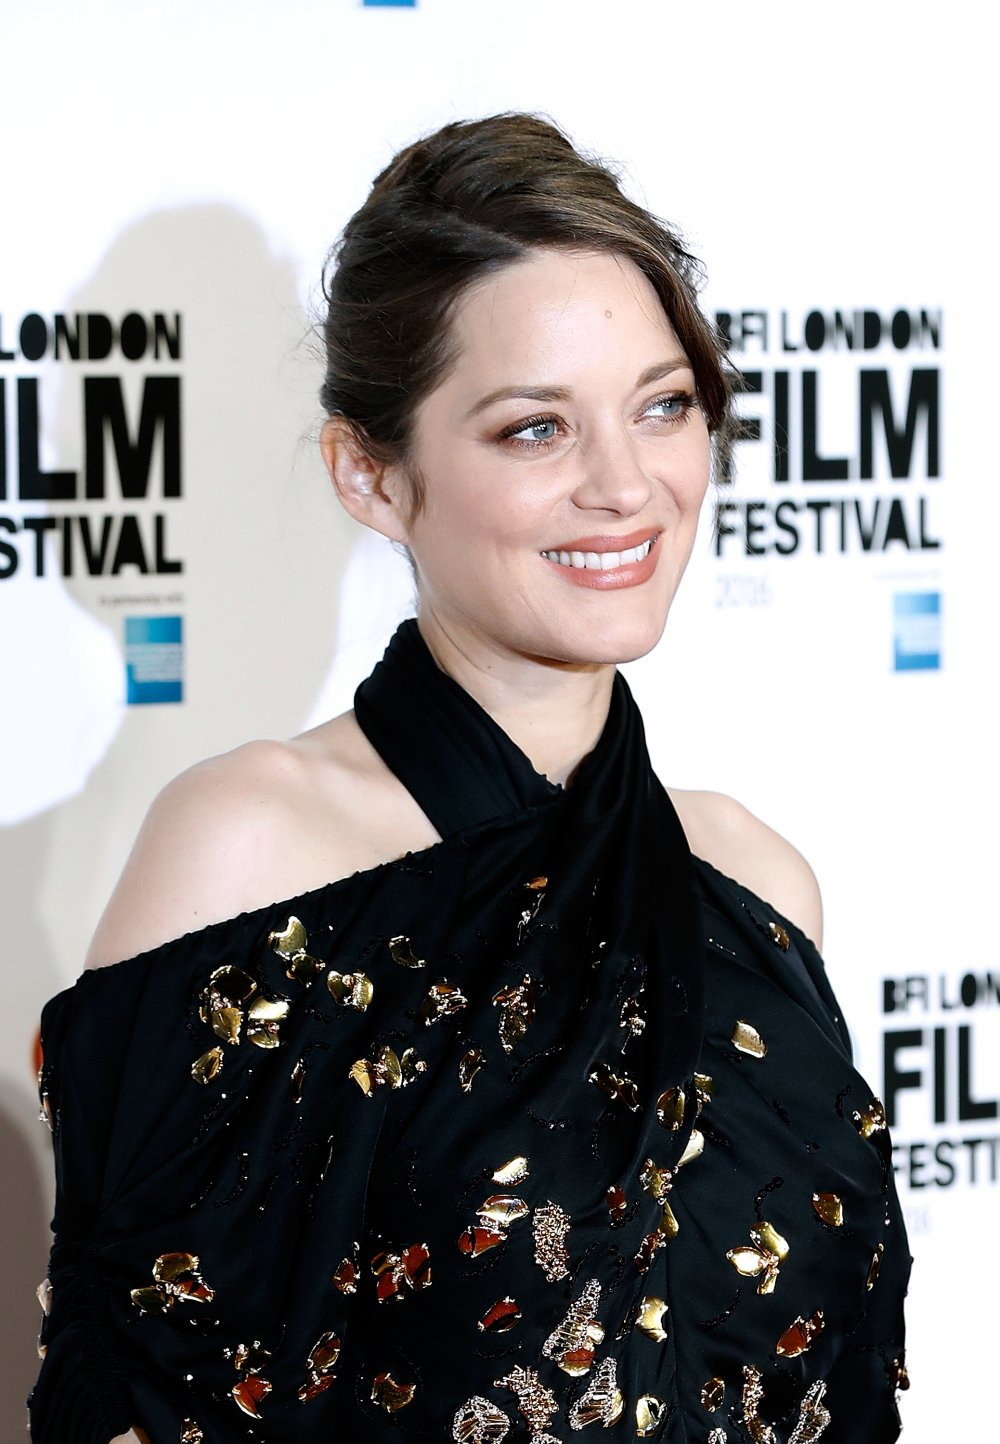 da63c2b7b91 Marion Cotillard attends the It's Only the End of the World BFI